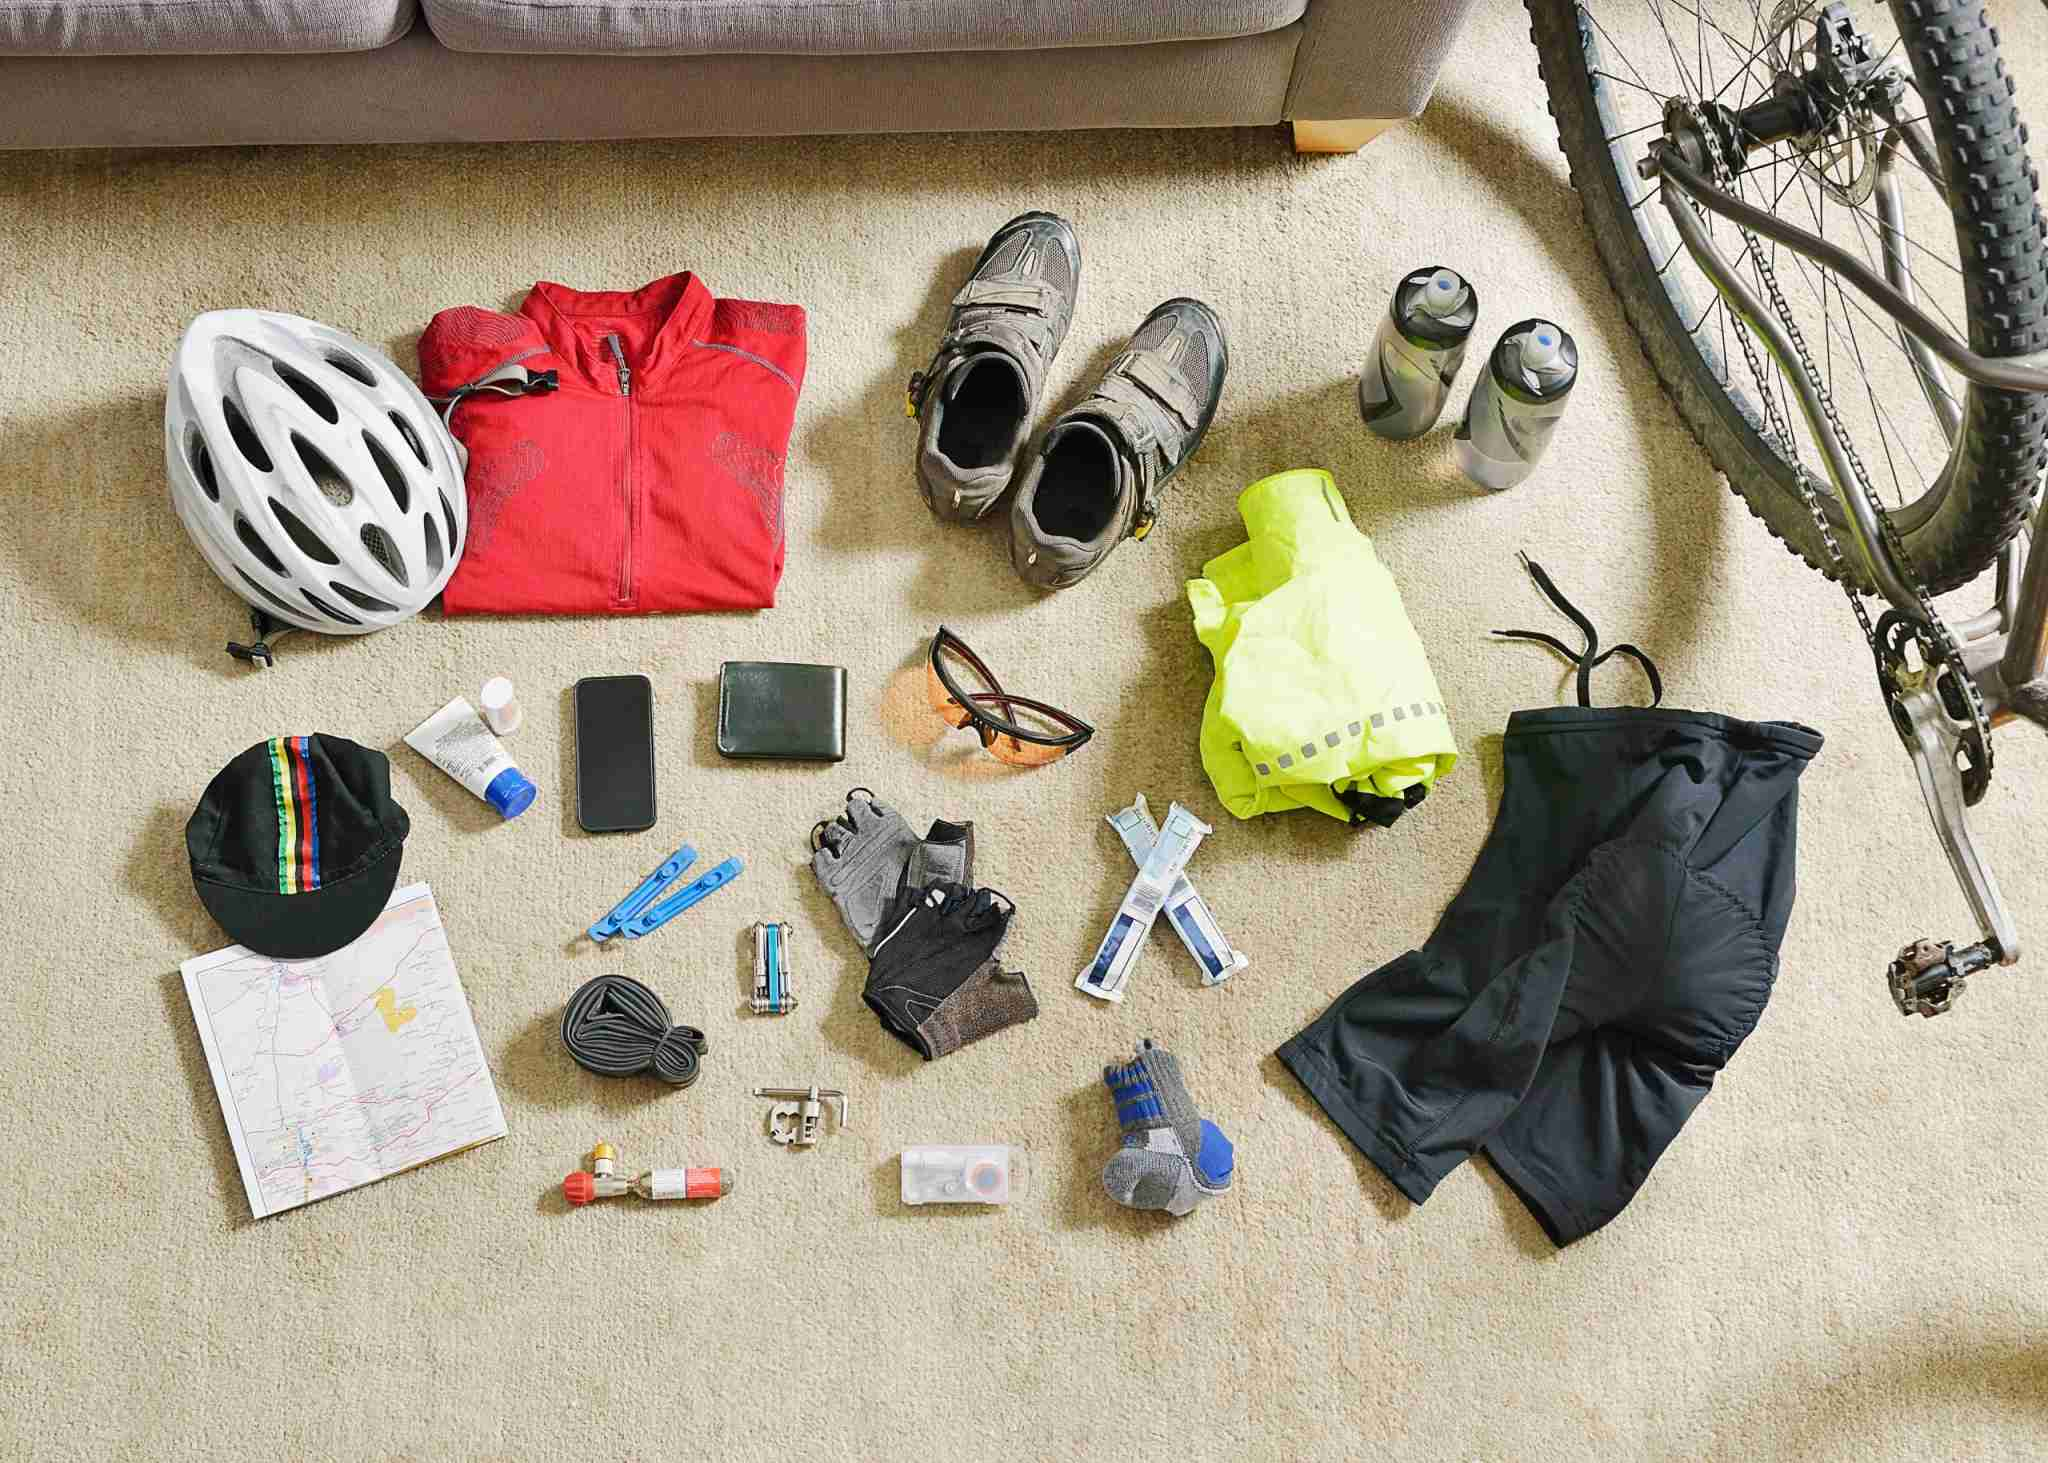 Cycling gear. Photo by David Malan / Getty Images